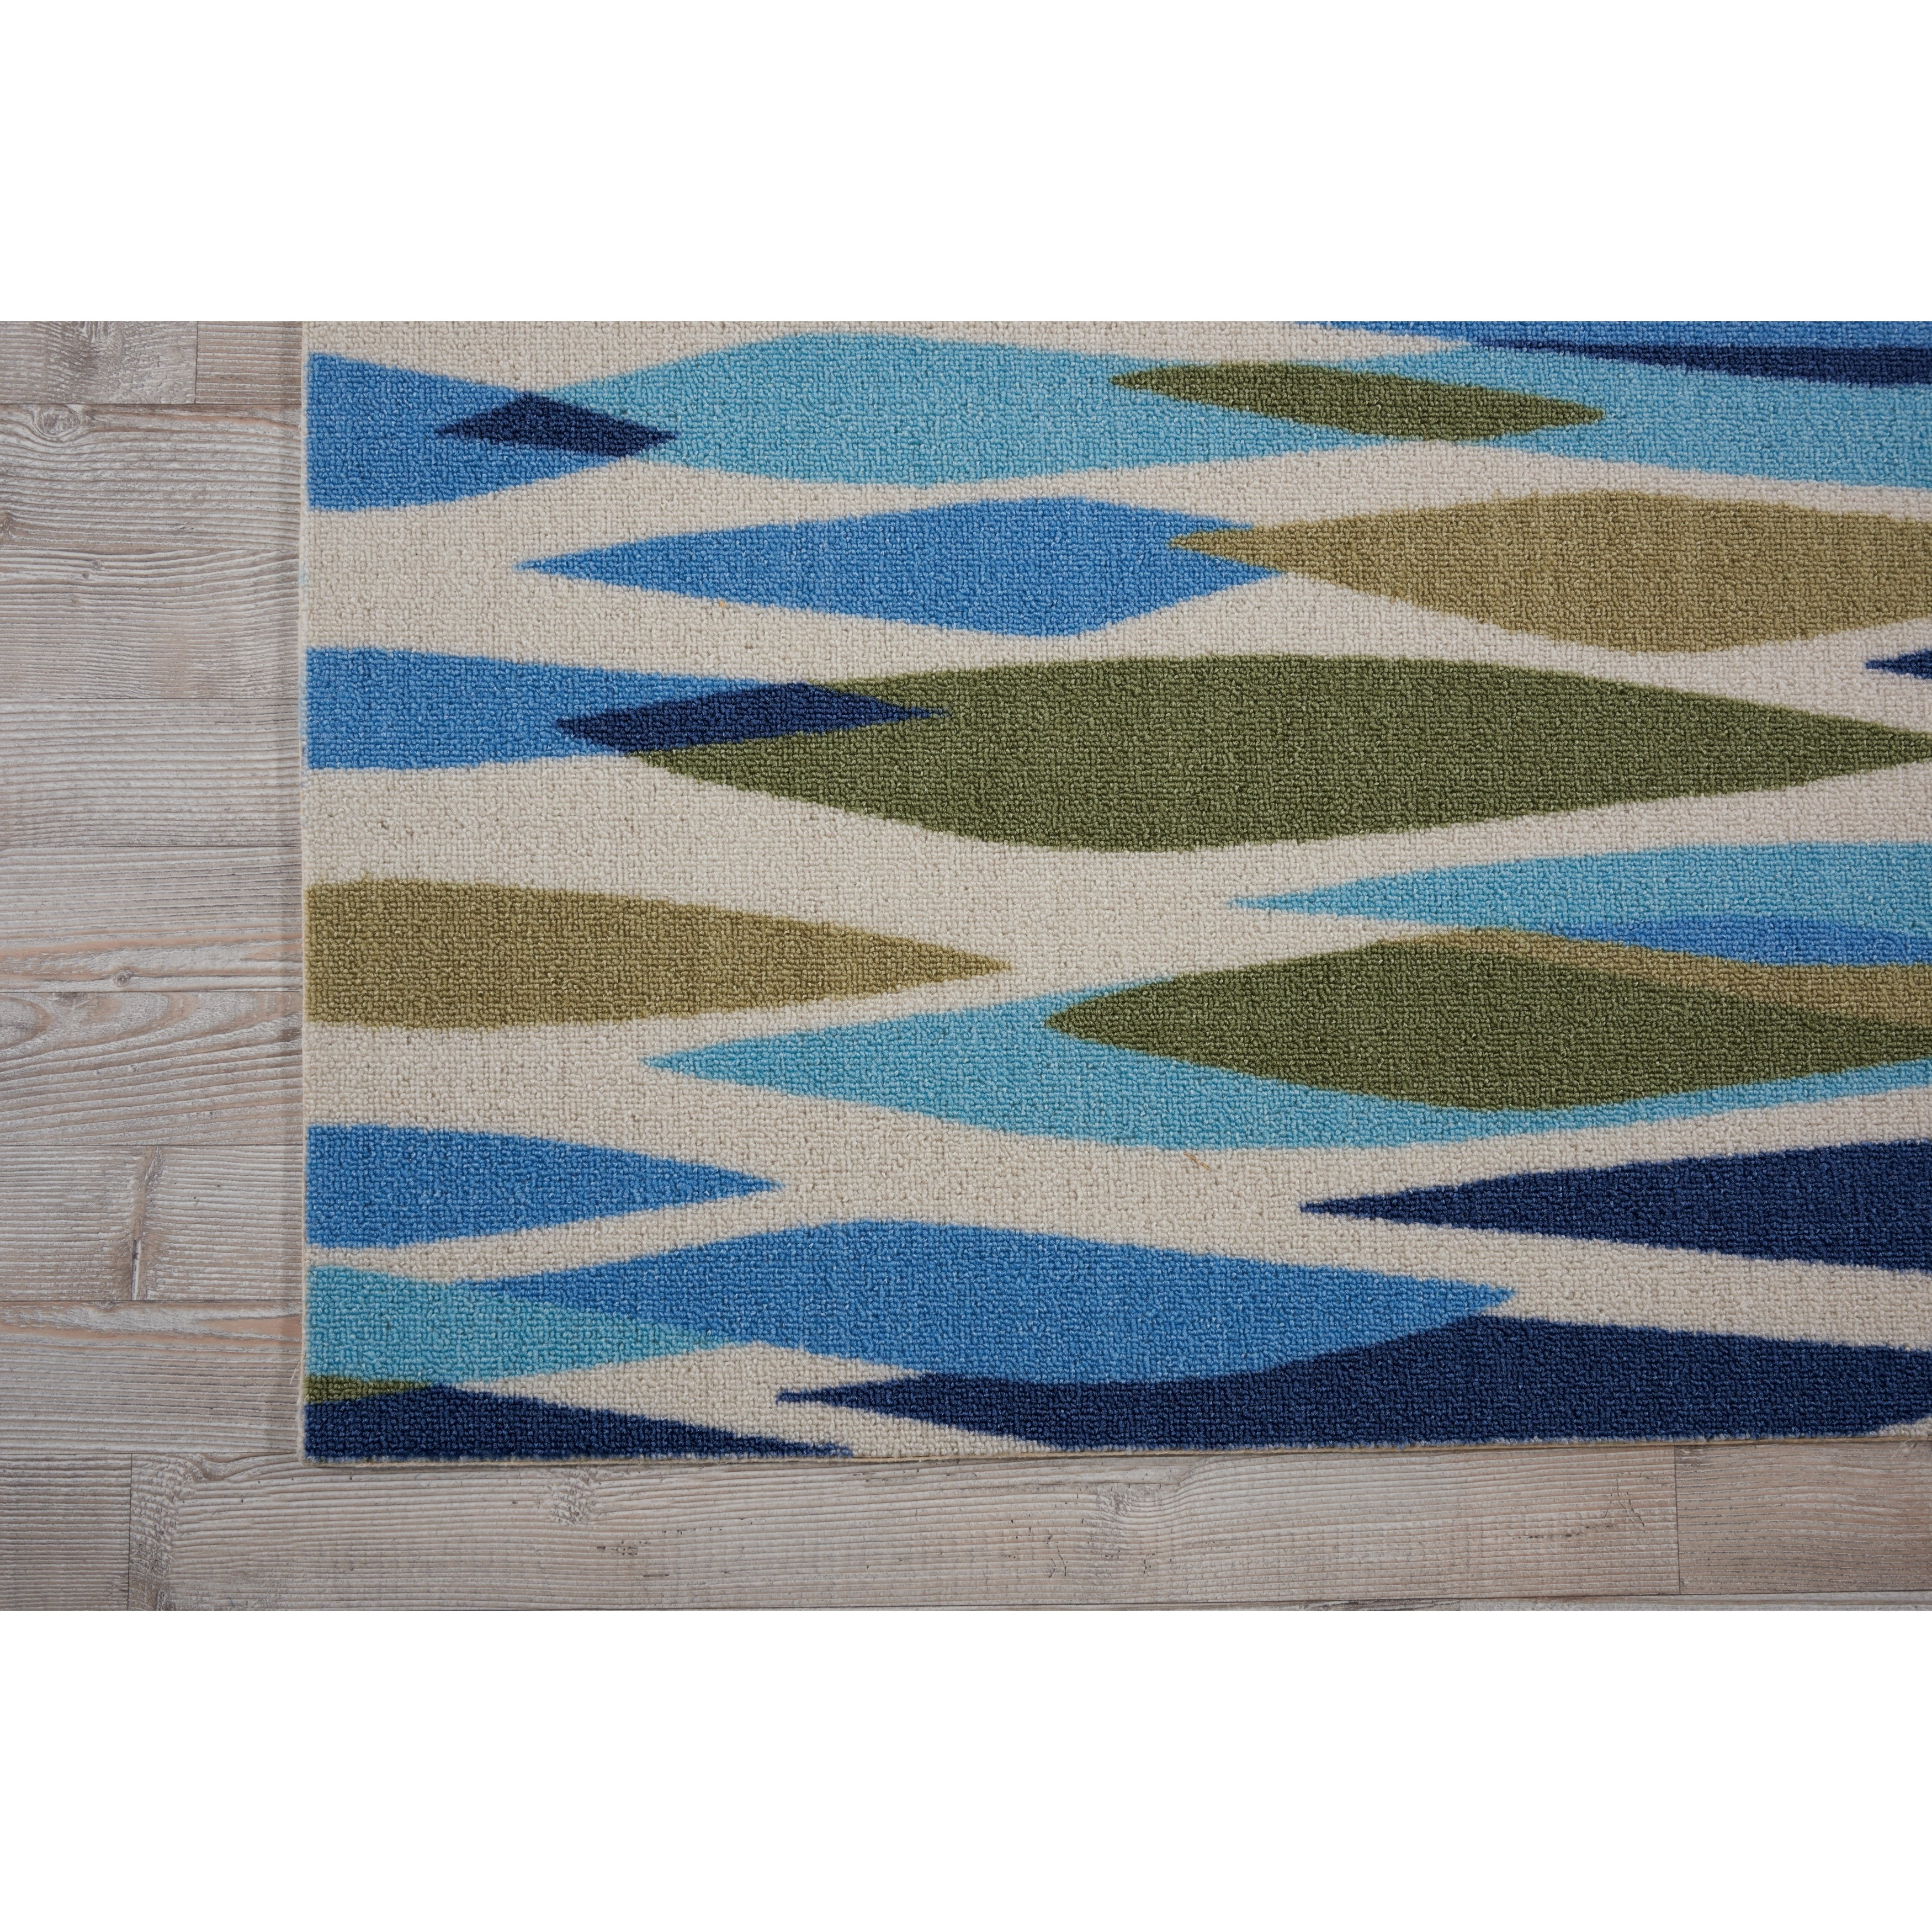 Relatively Waverly Sun N' Shade Bits & Pieces Seaglass Area Rug by Nourison  TI07